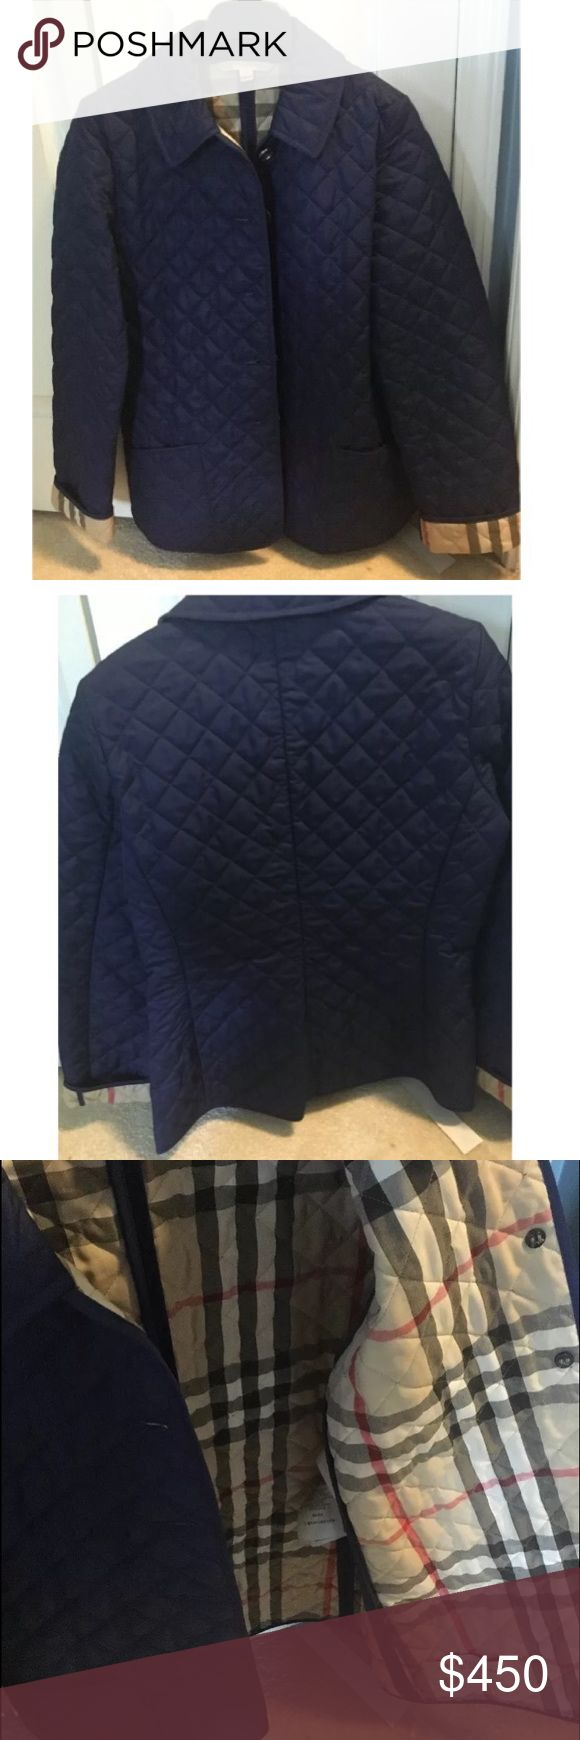 Authentic Burberry quilted jacket Authentic royal blue Burberry quilted jacket. Brand new only worn a few times. In excellent condition. Burberry Jackets & Coats